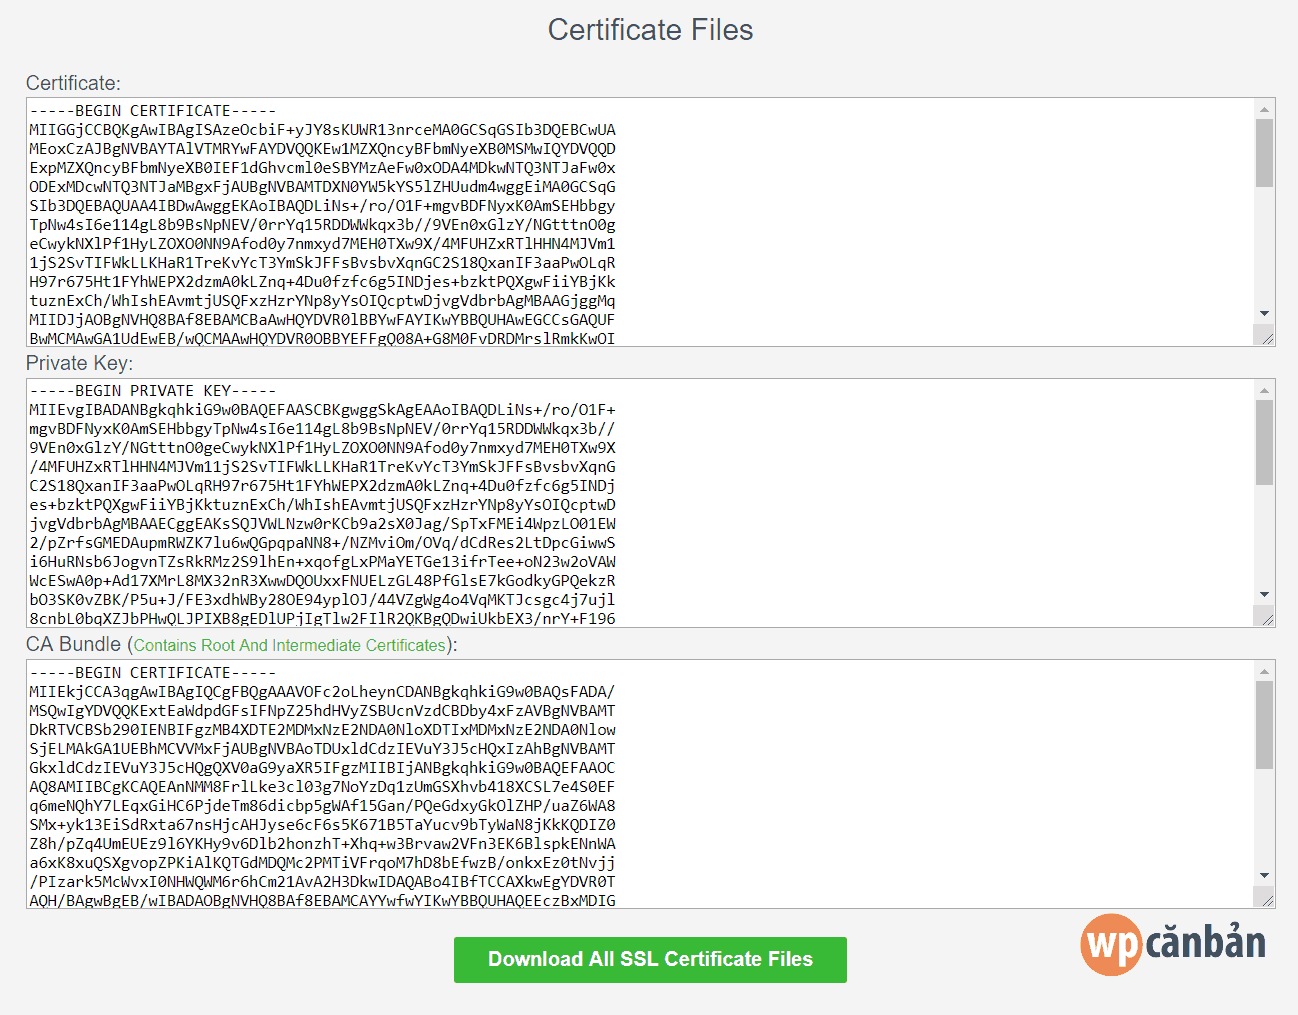 download-all-ssl-certificate-files